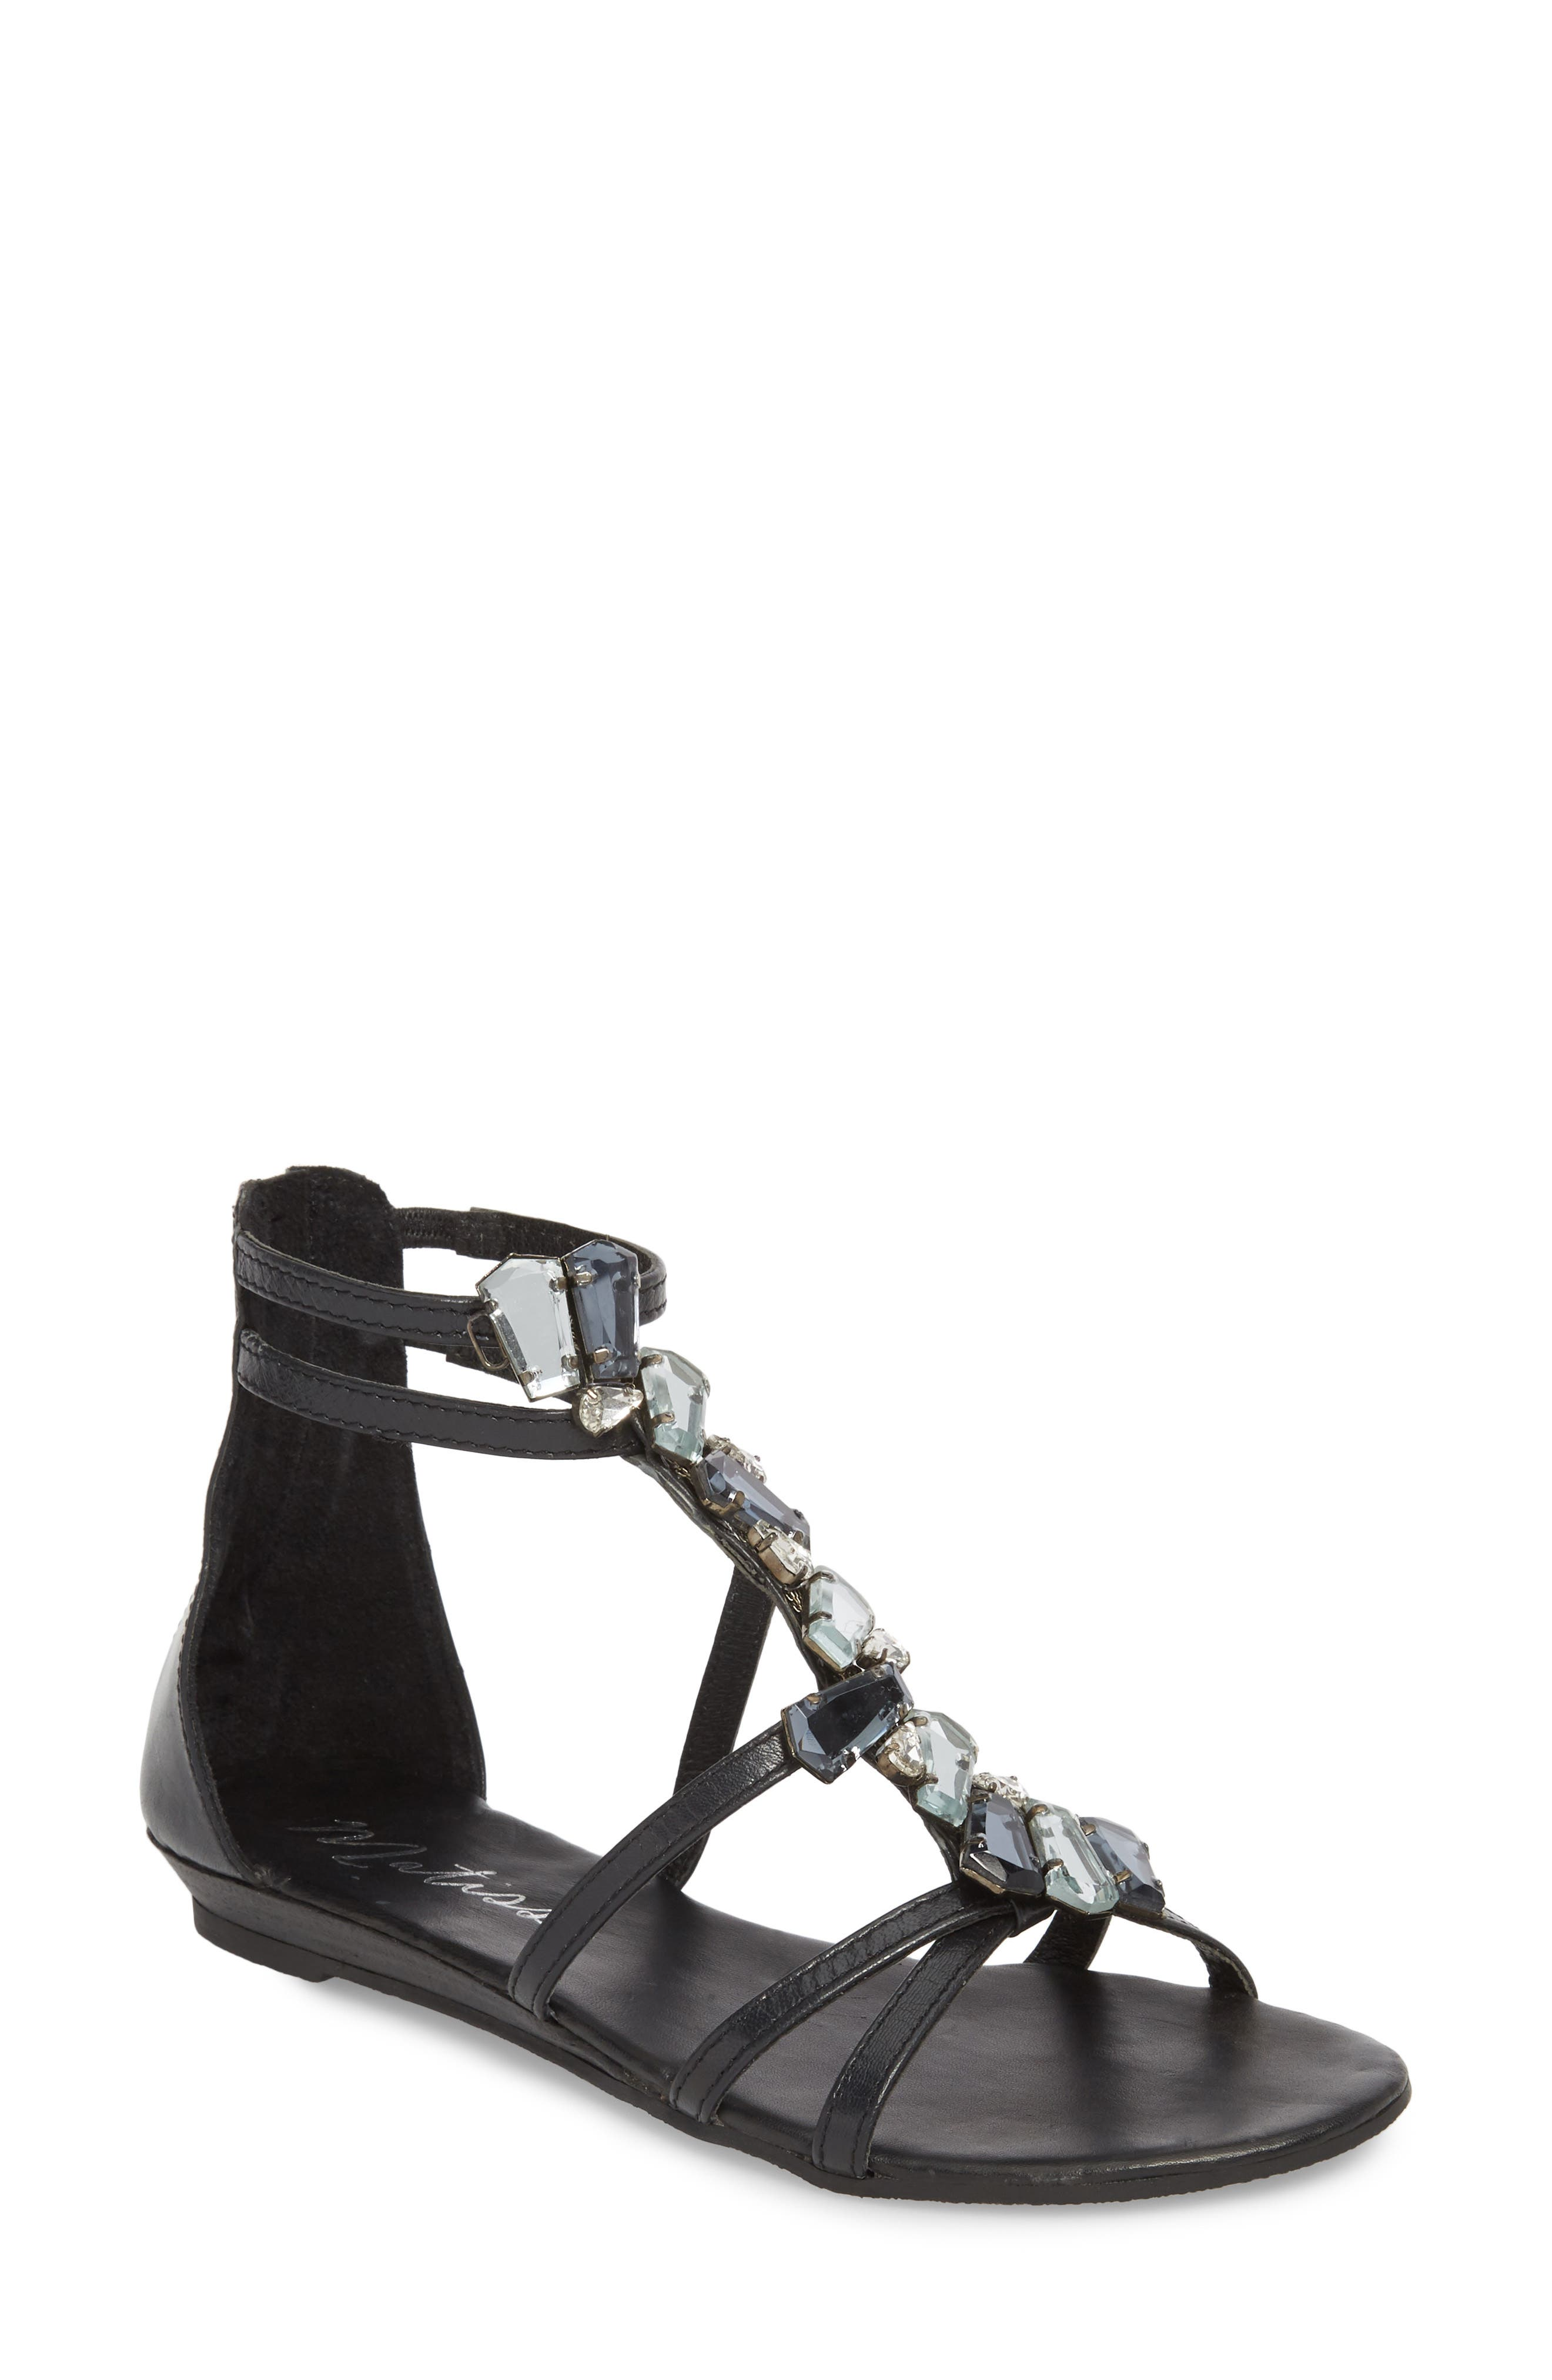 Didi Crystal Embellished Sandal,                             Main thumbnail 1, color,                             Black Leather